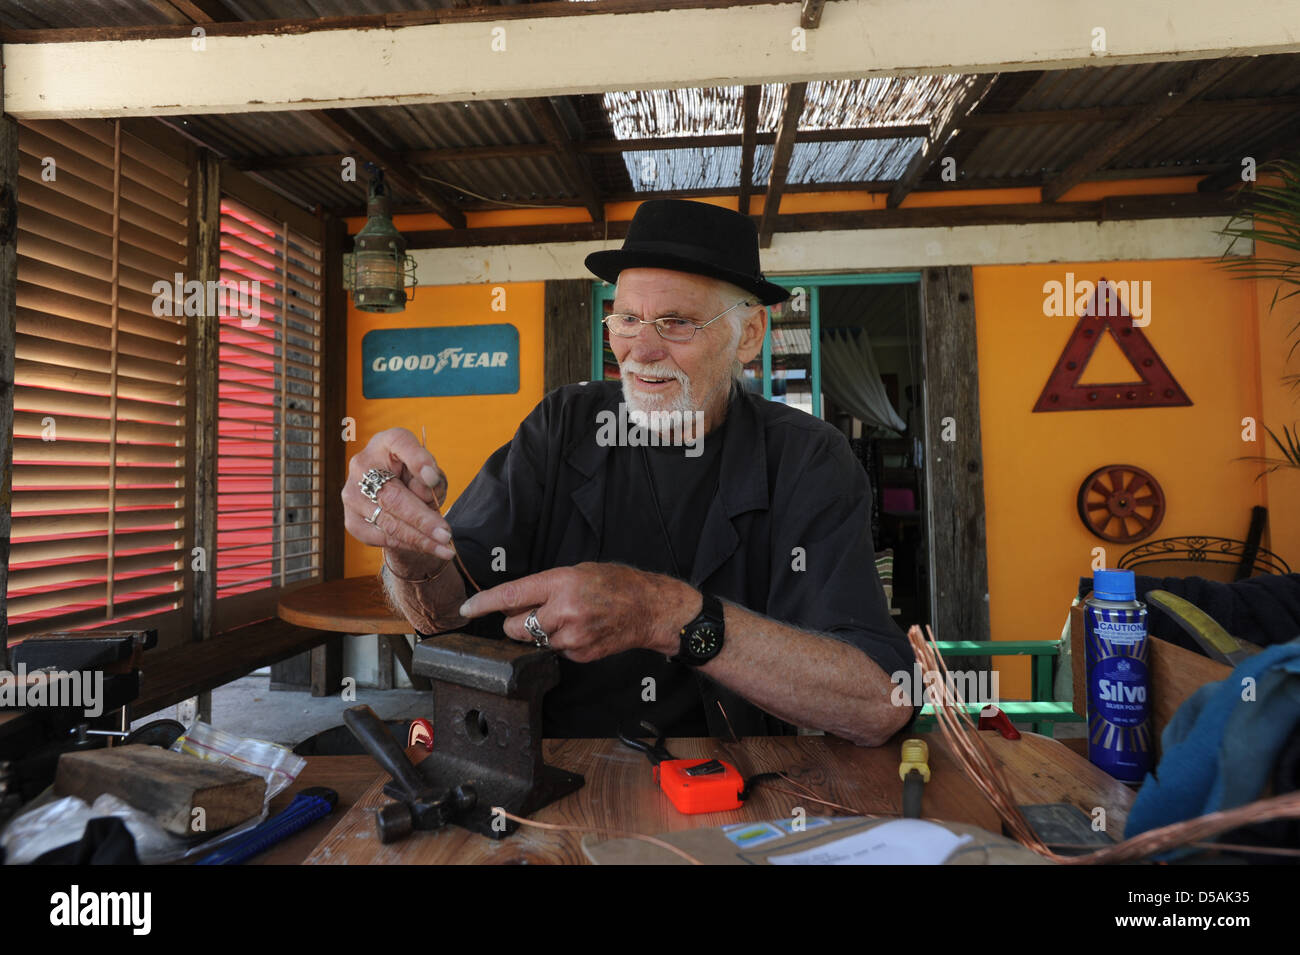 An older man working at jewellery making. - Stock Image